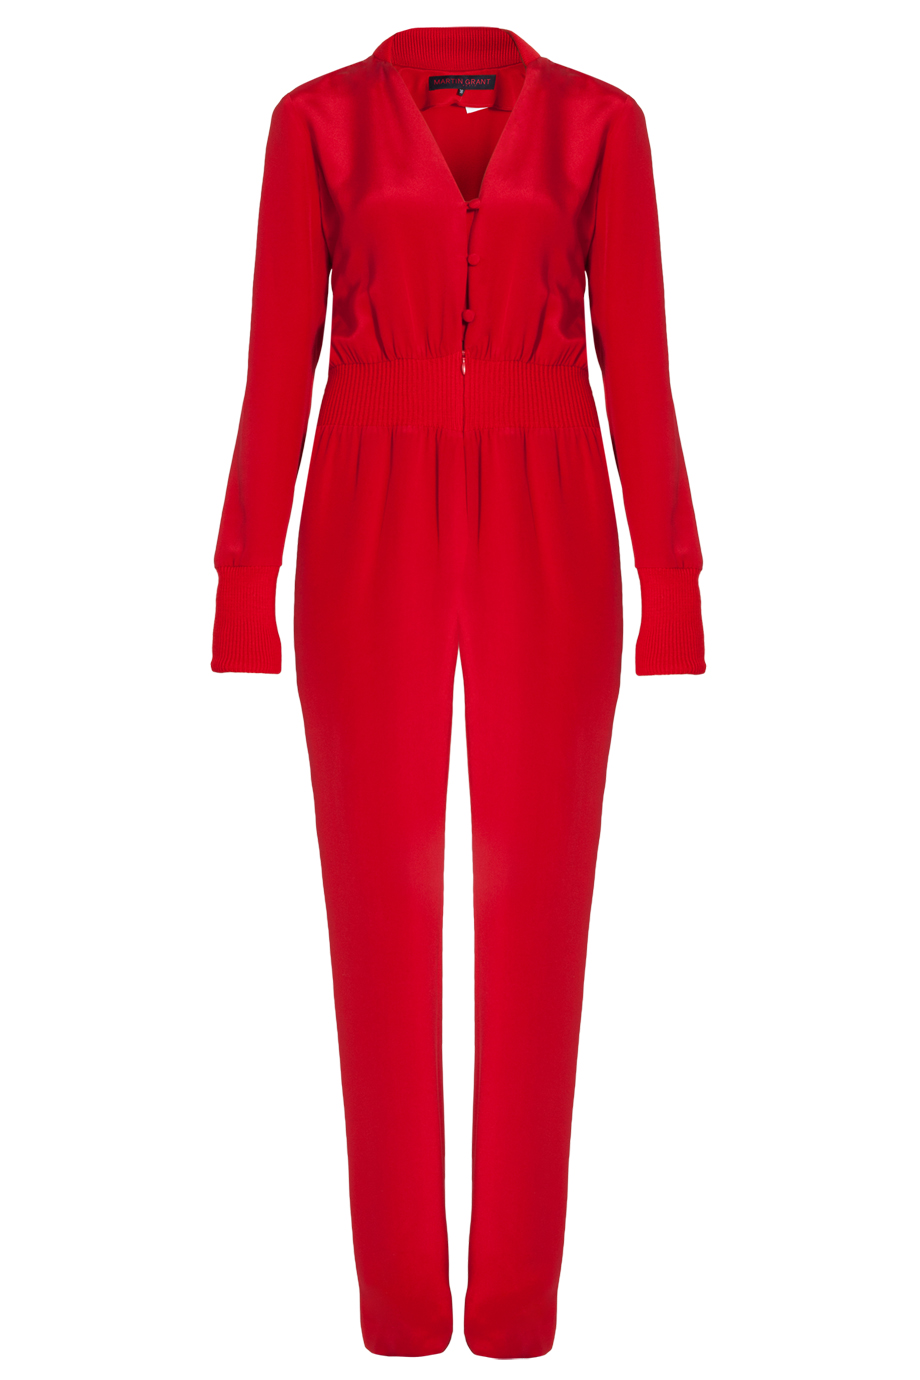 Martin grant Long Sleeve Jumpsuit in Red | Lyst